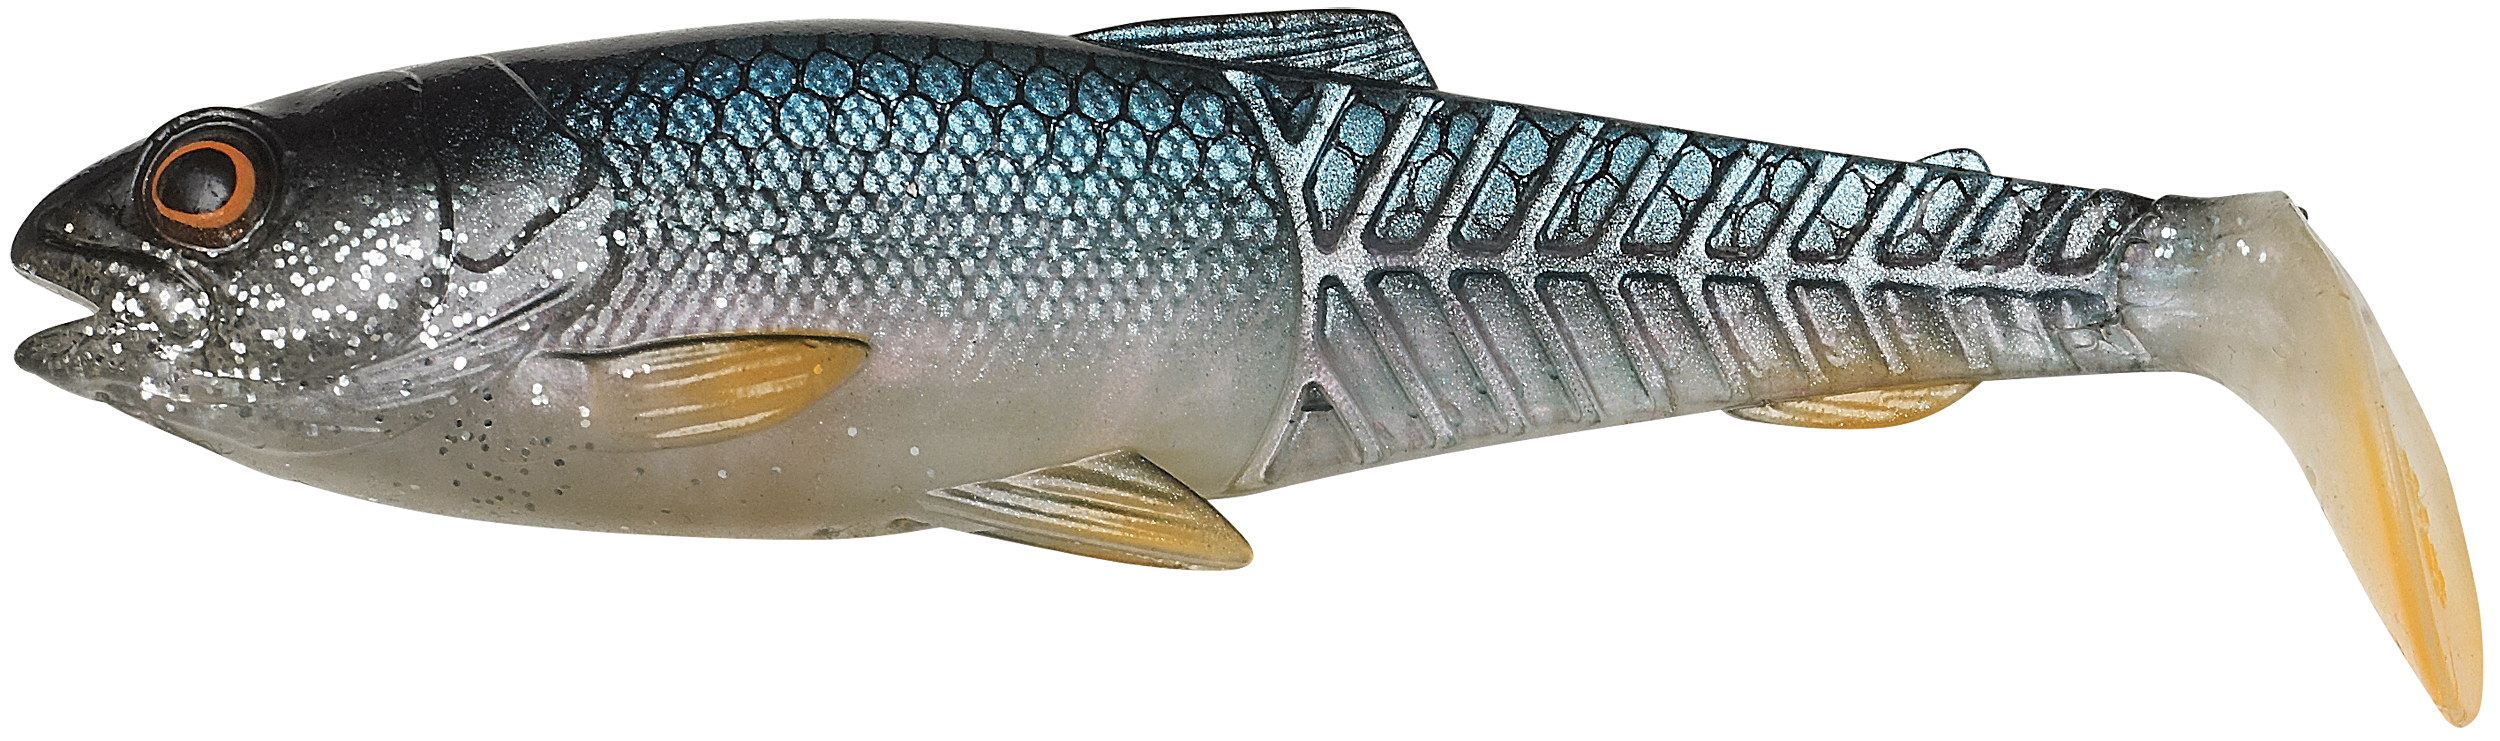 Savage Gear-Craft Cannibal Paddletail 12,5cm Farbe Roach-1 - Gerlinger.de